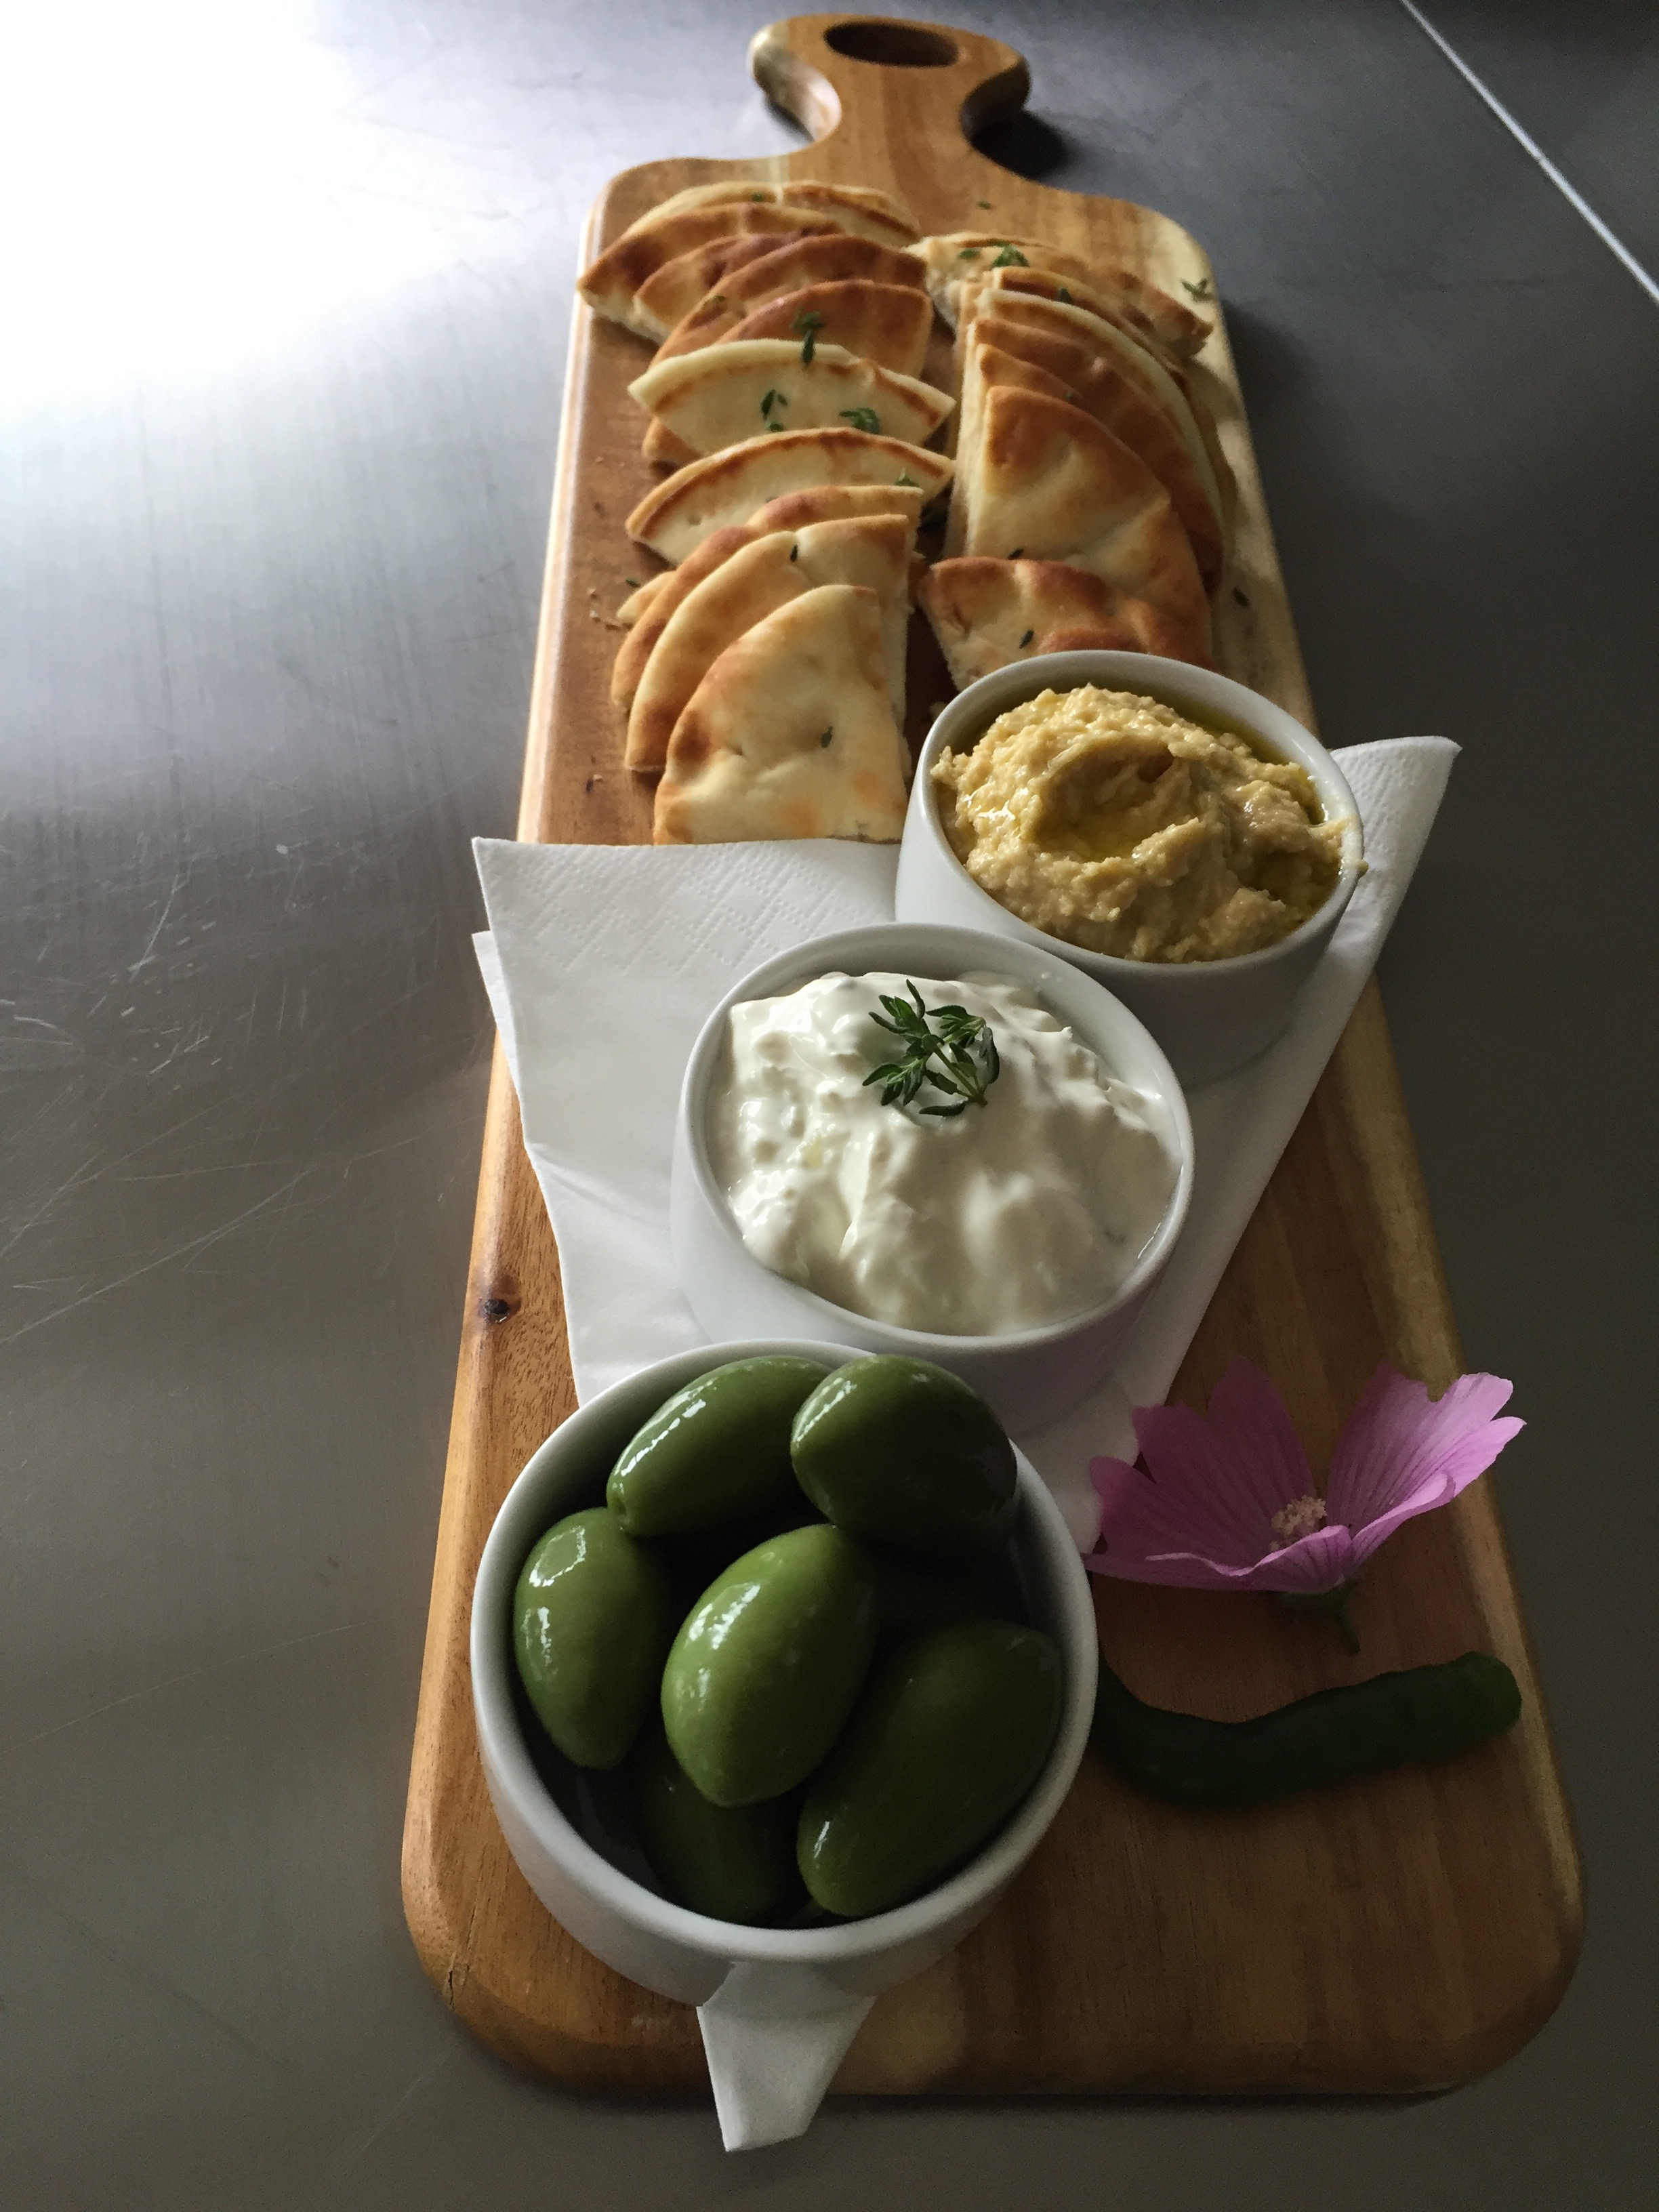 fresh hummus, cucumber & garlic yogurt dip served with olives and fresh pita